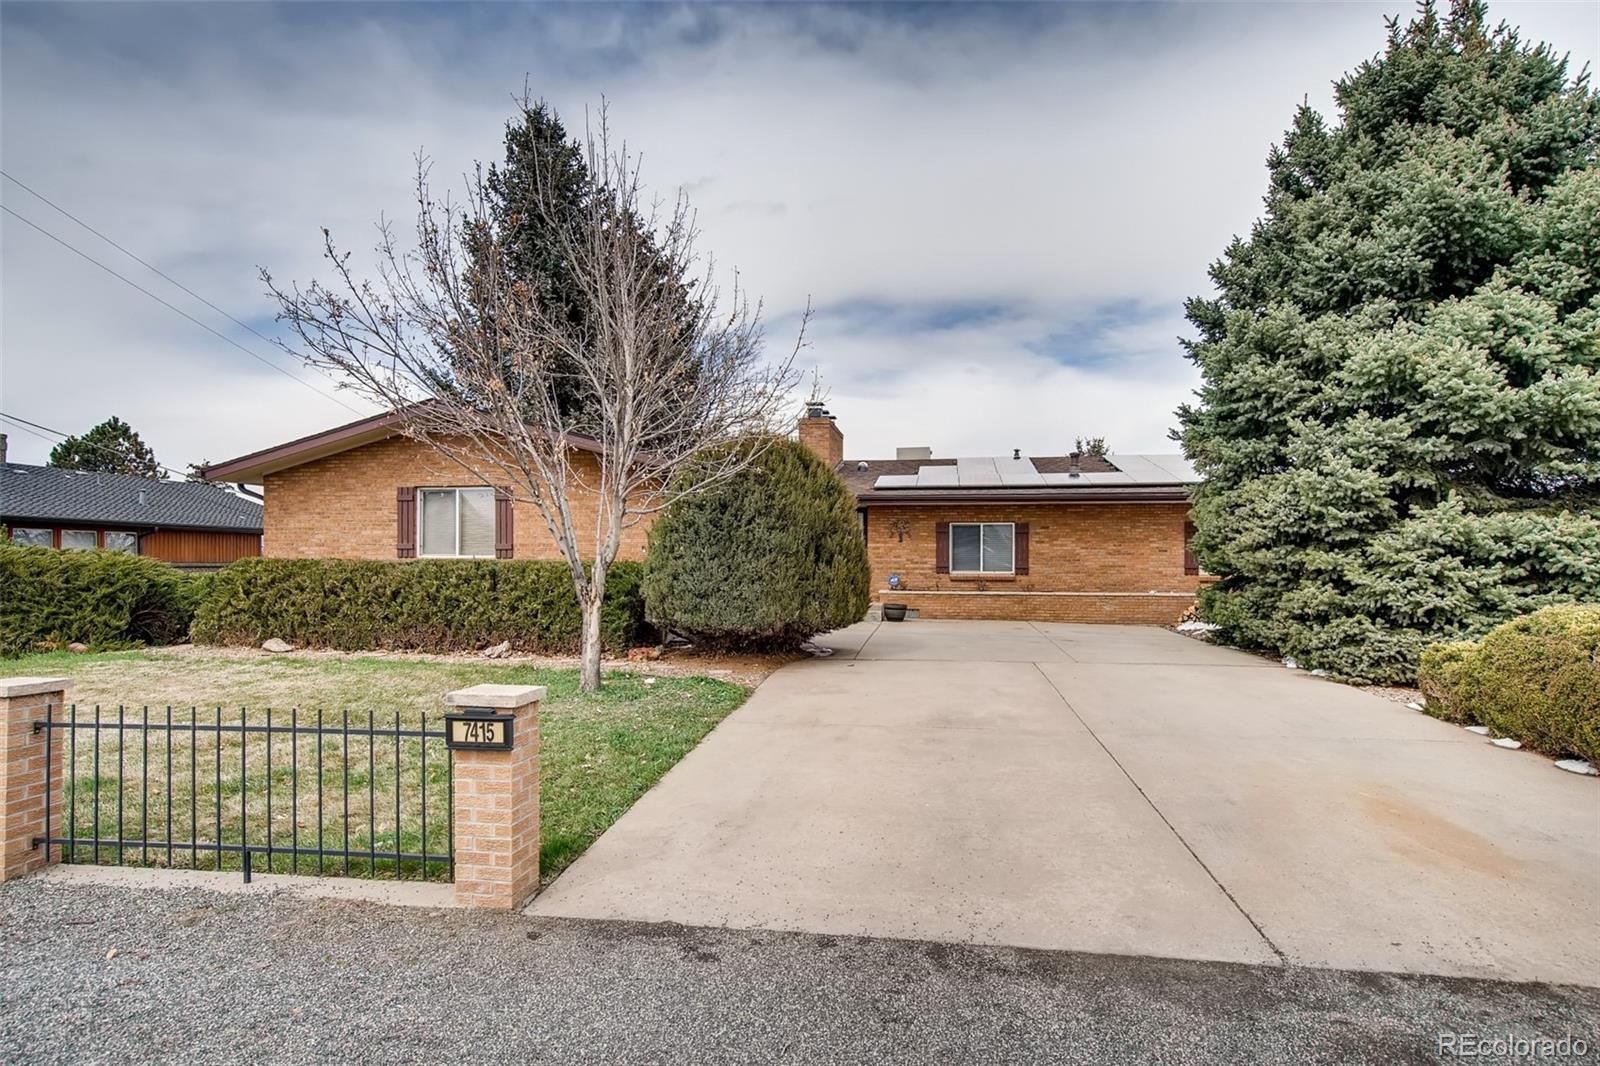 7415 W 94th Place, Westminster, CO 80021 - Westminster, CO real estate listing